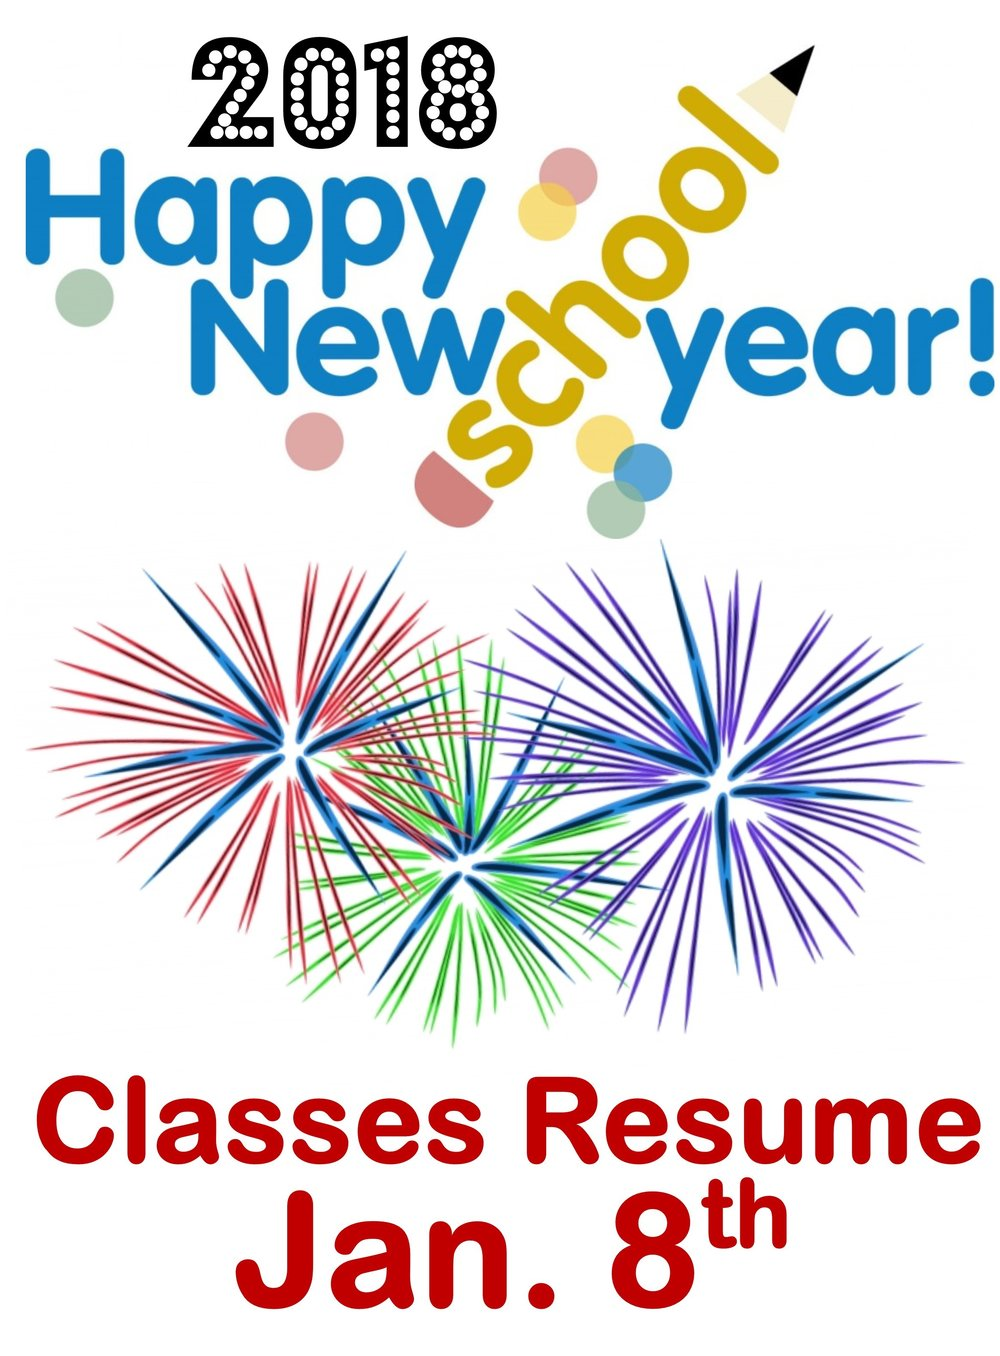 classes resume boulder creek pto